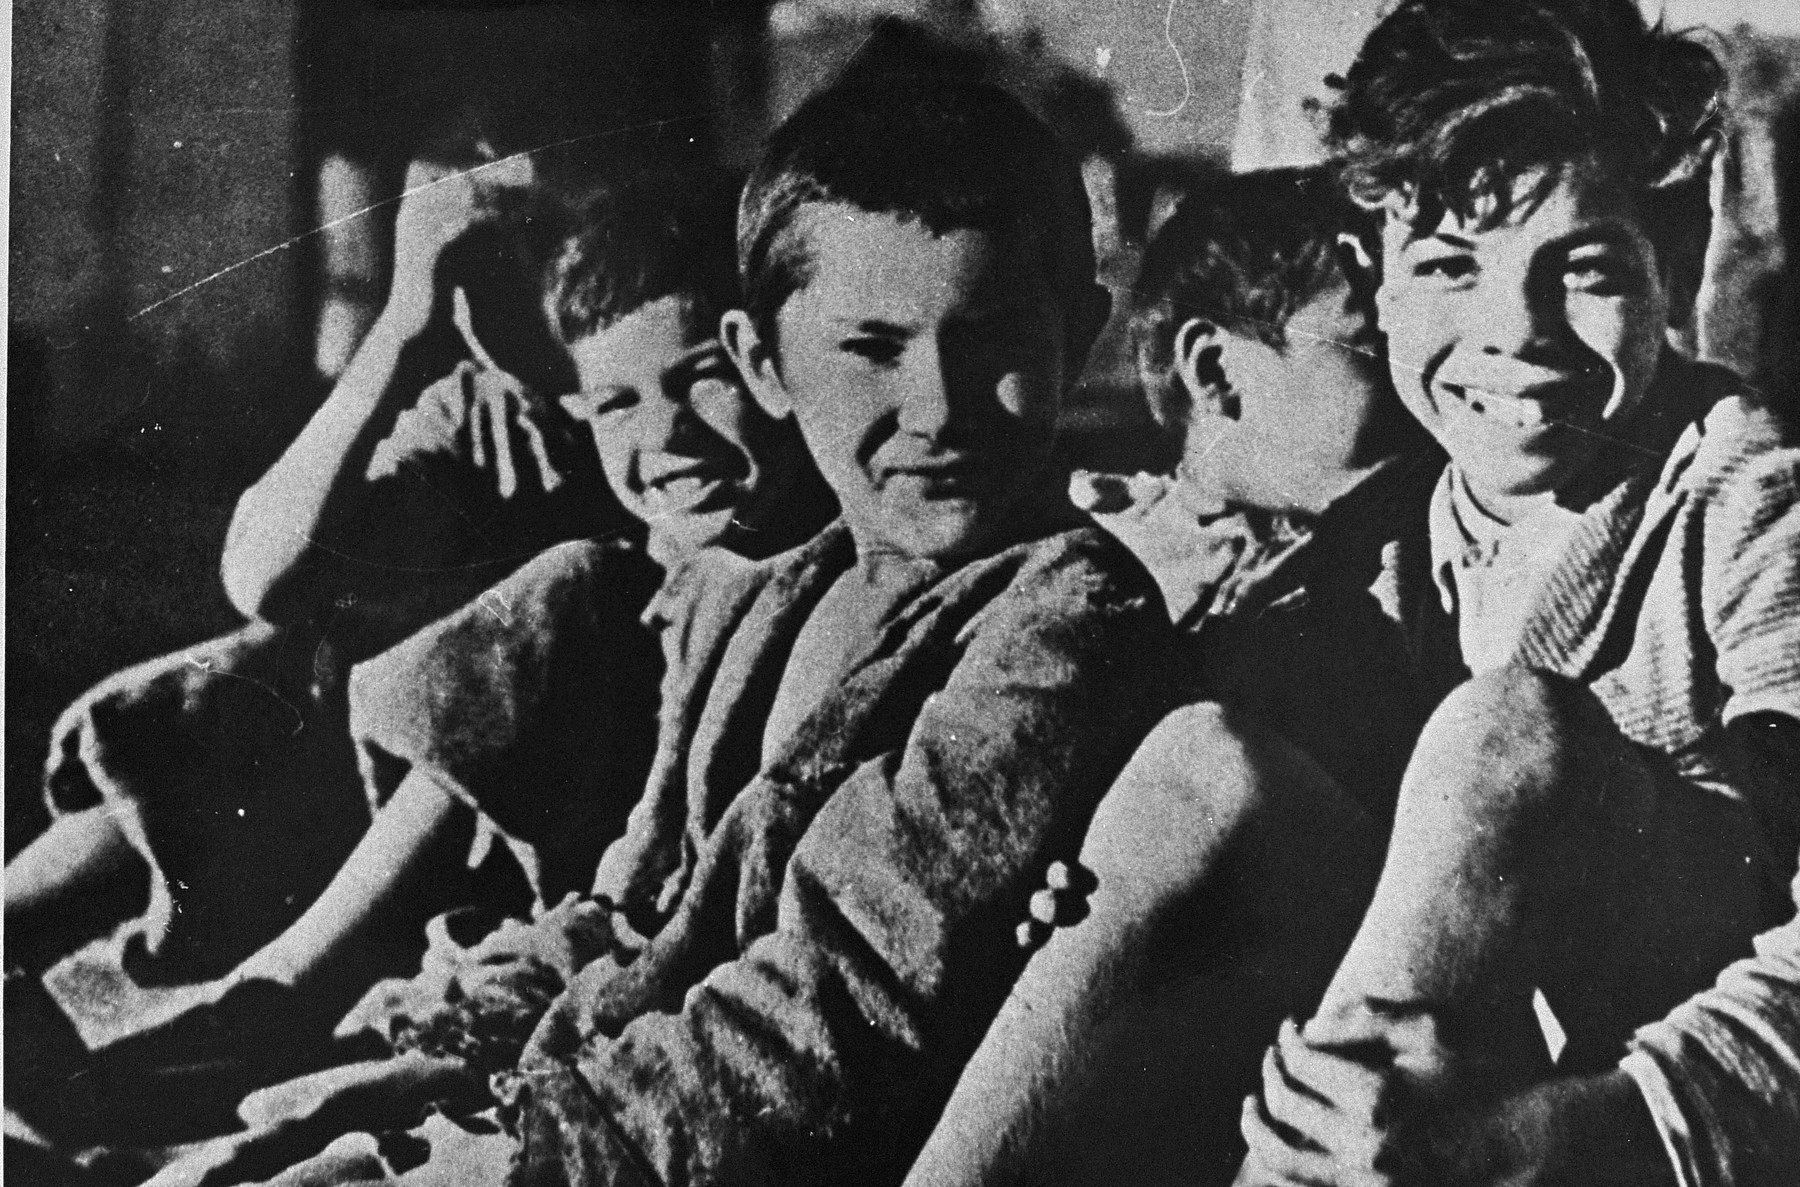 A group of Roman (Gypsy) children, who were later deported.